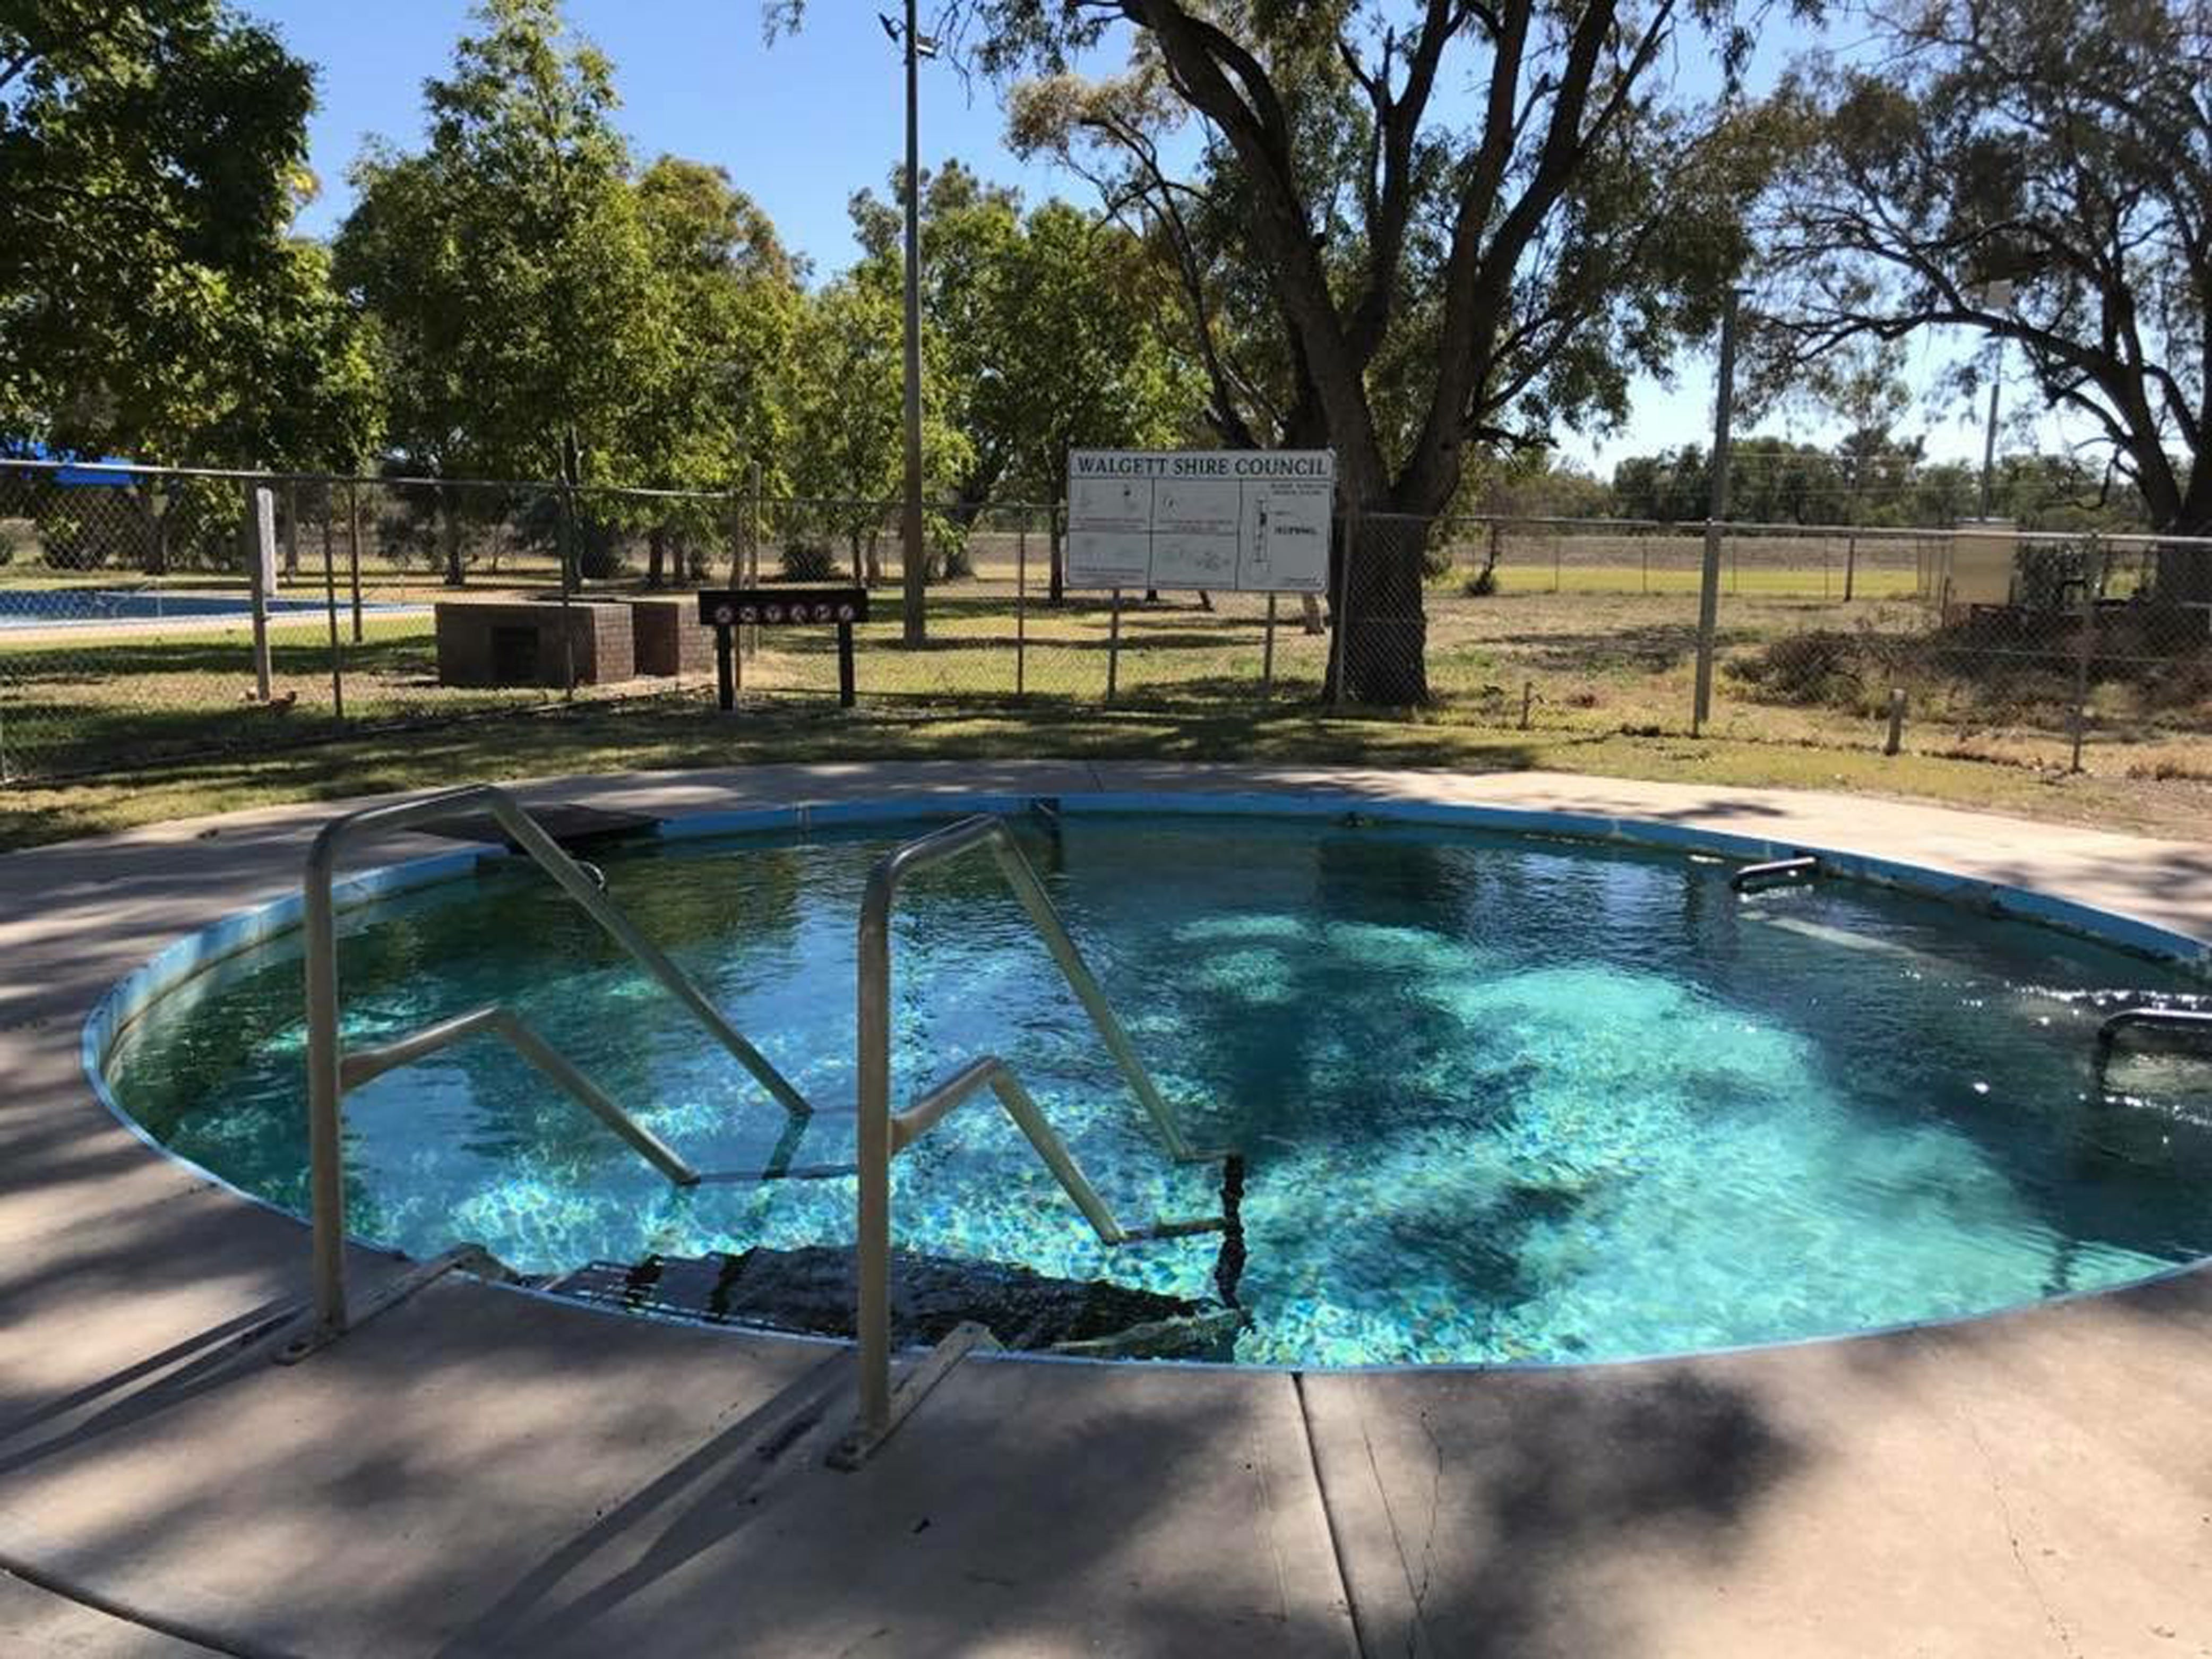 Walgett Artesian Bore Baths - Accommodation Sydney